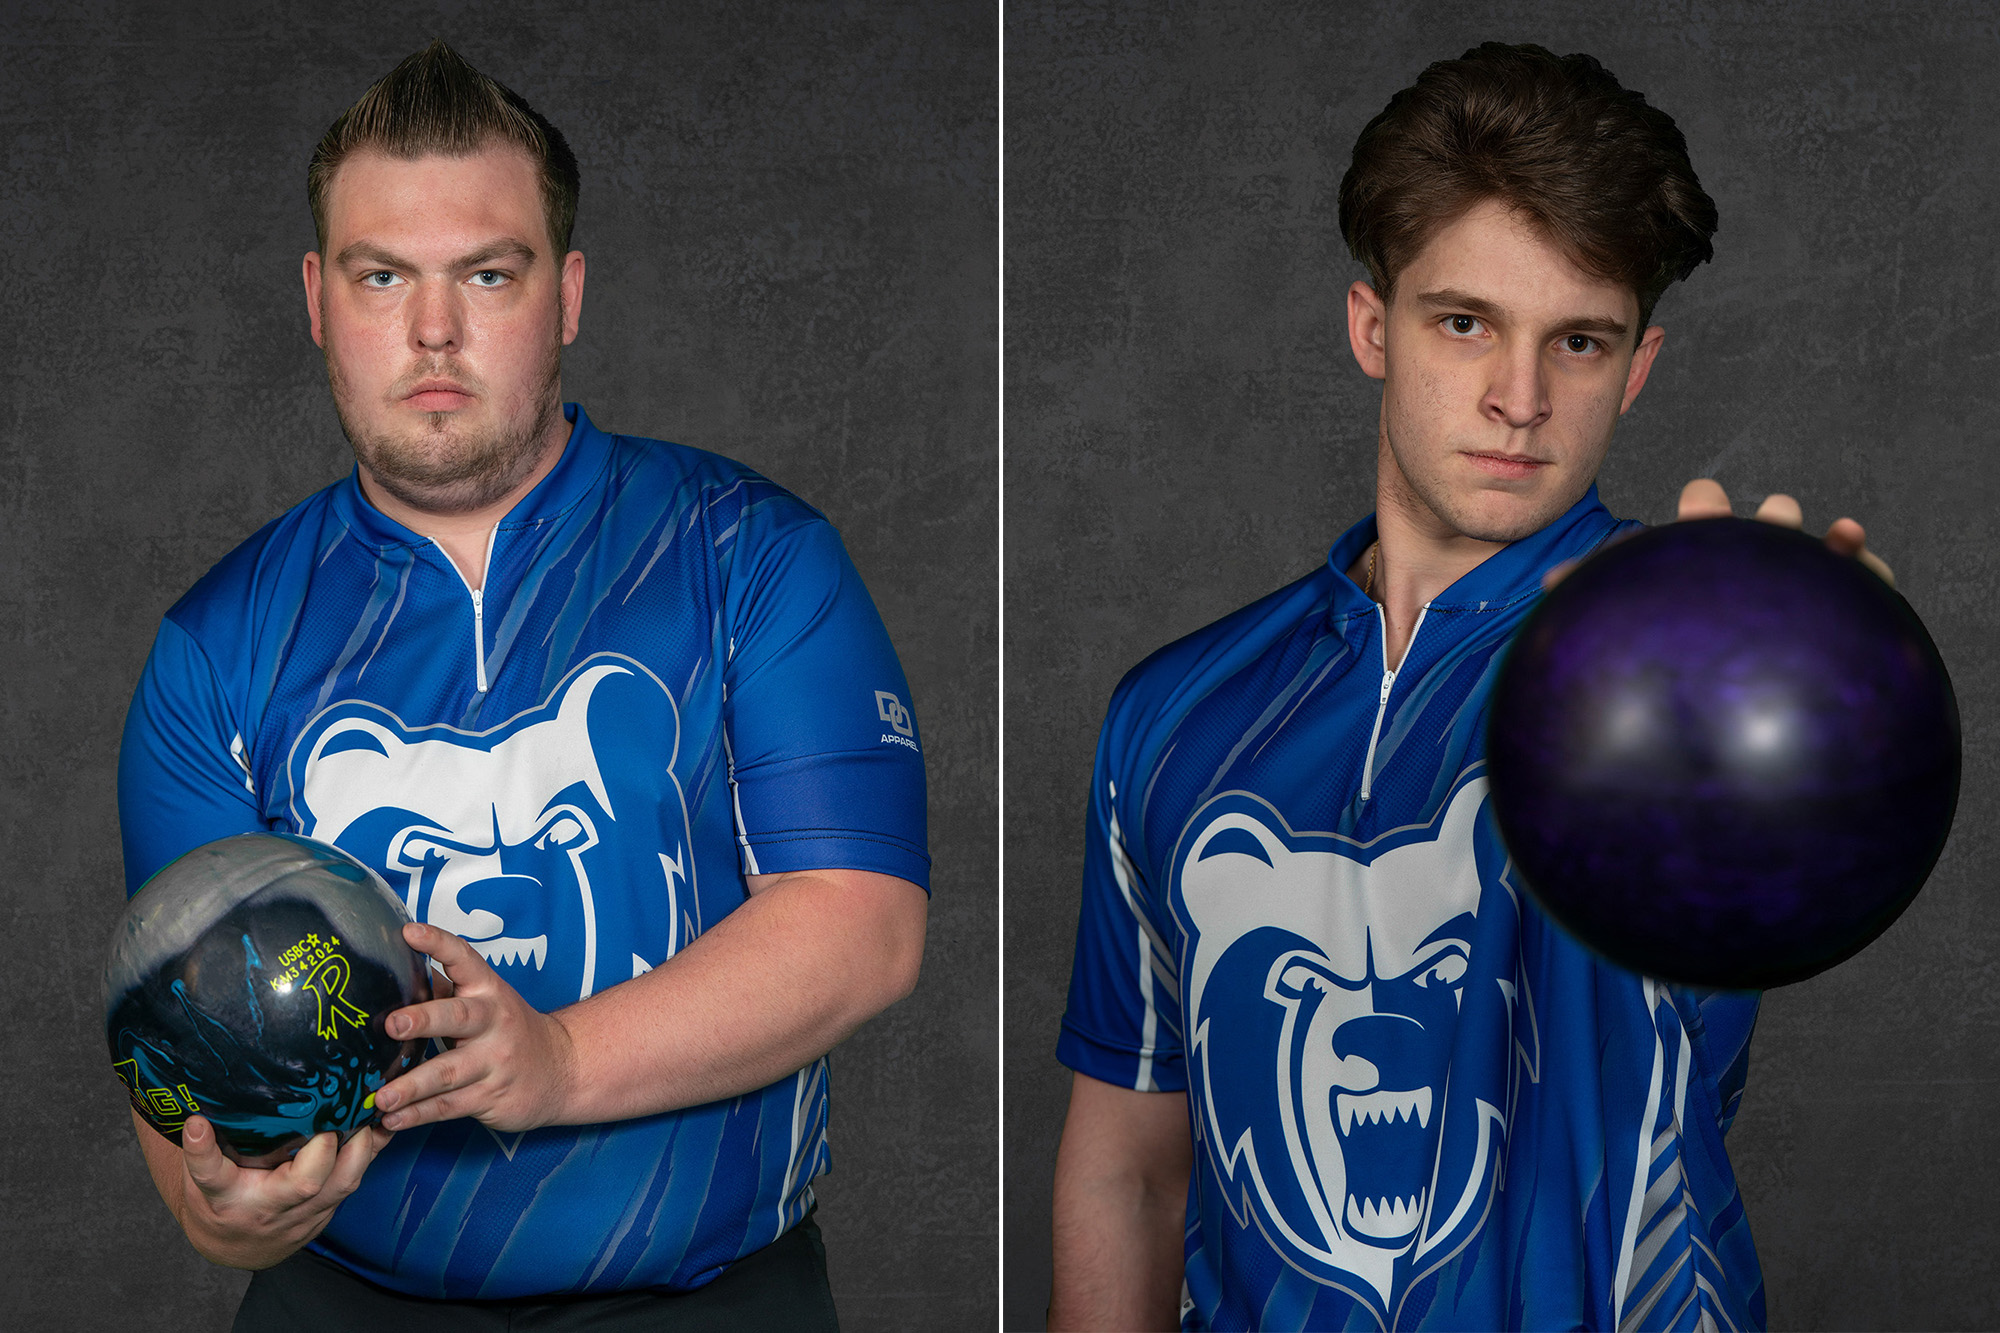 Men's bowlers Jacob O'Donnell and Bryan Foote